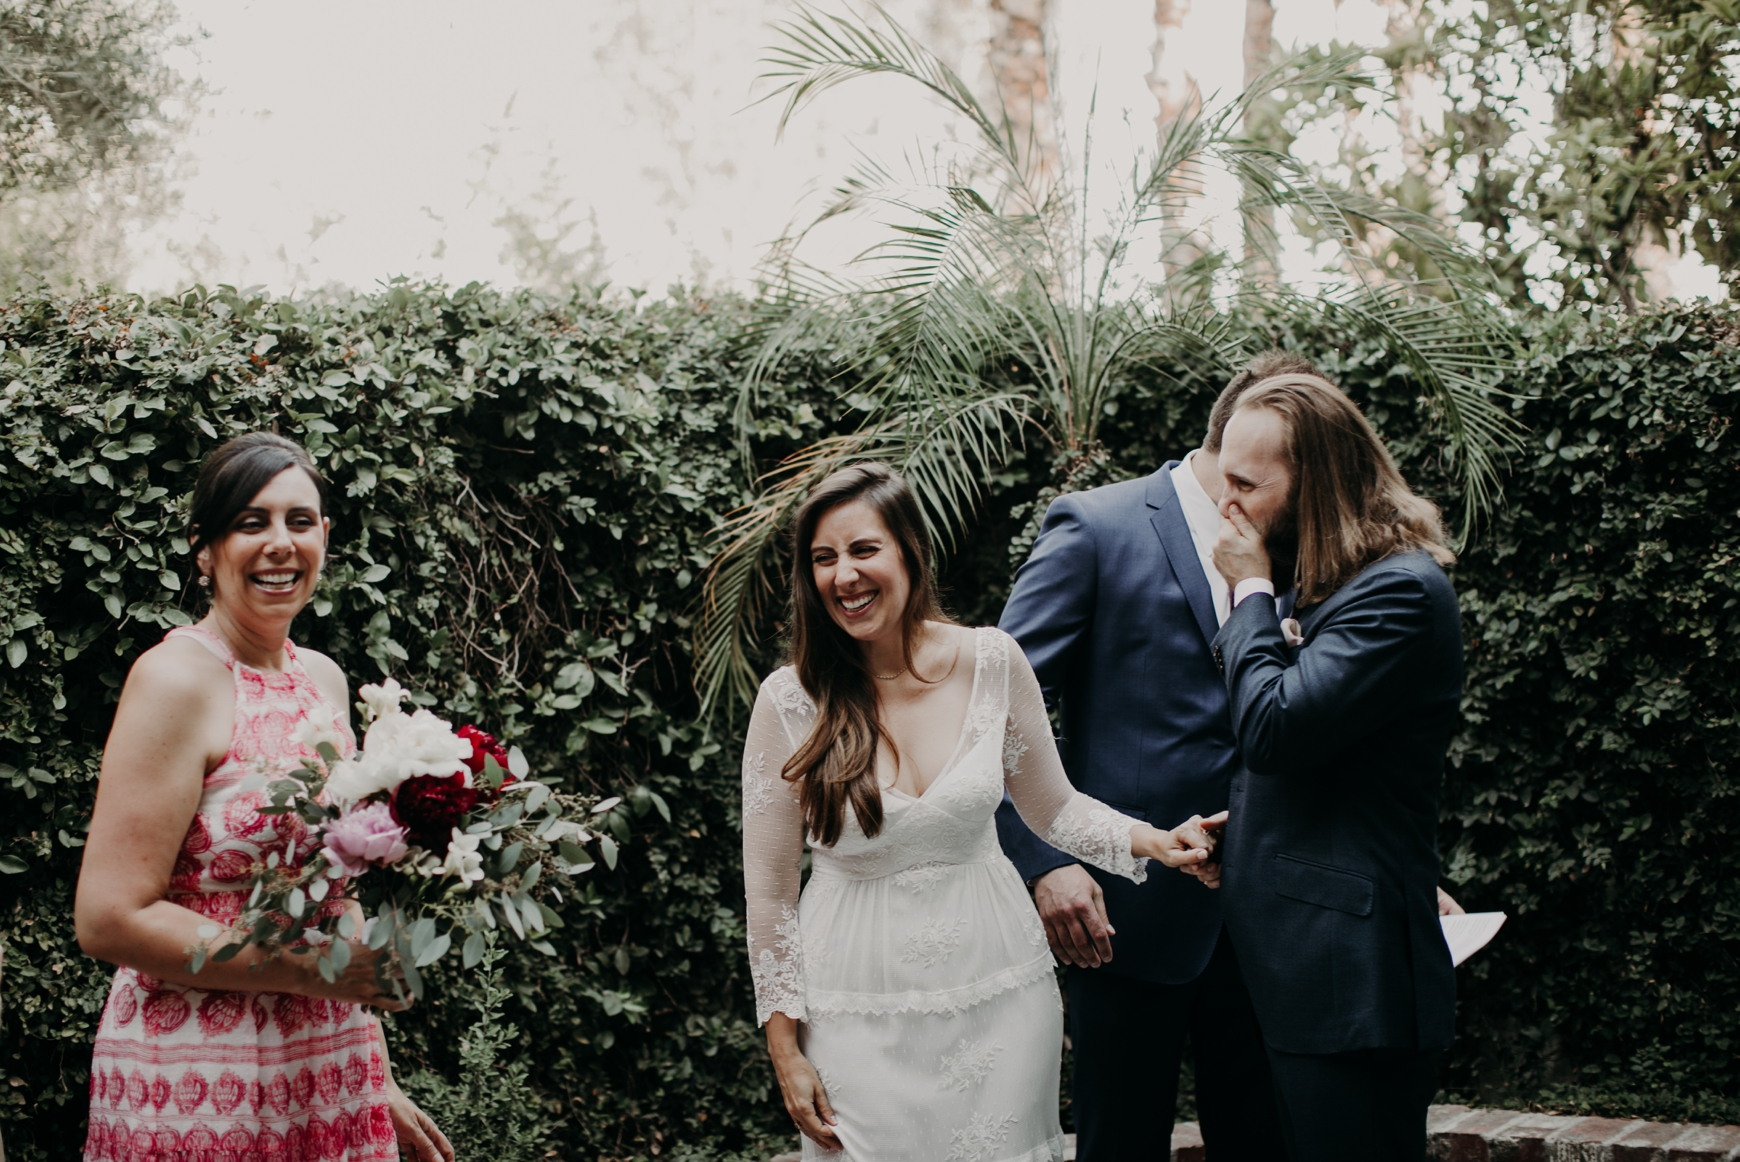 The Colony Palms Hotel Palm Springs Wedding Jaclyn & Tyson Emily Magers Photography-227.jpg